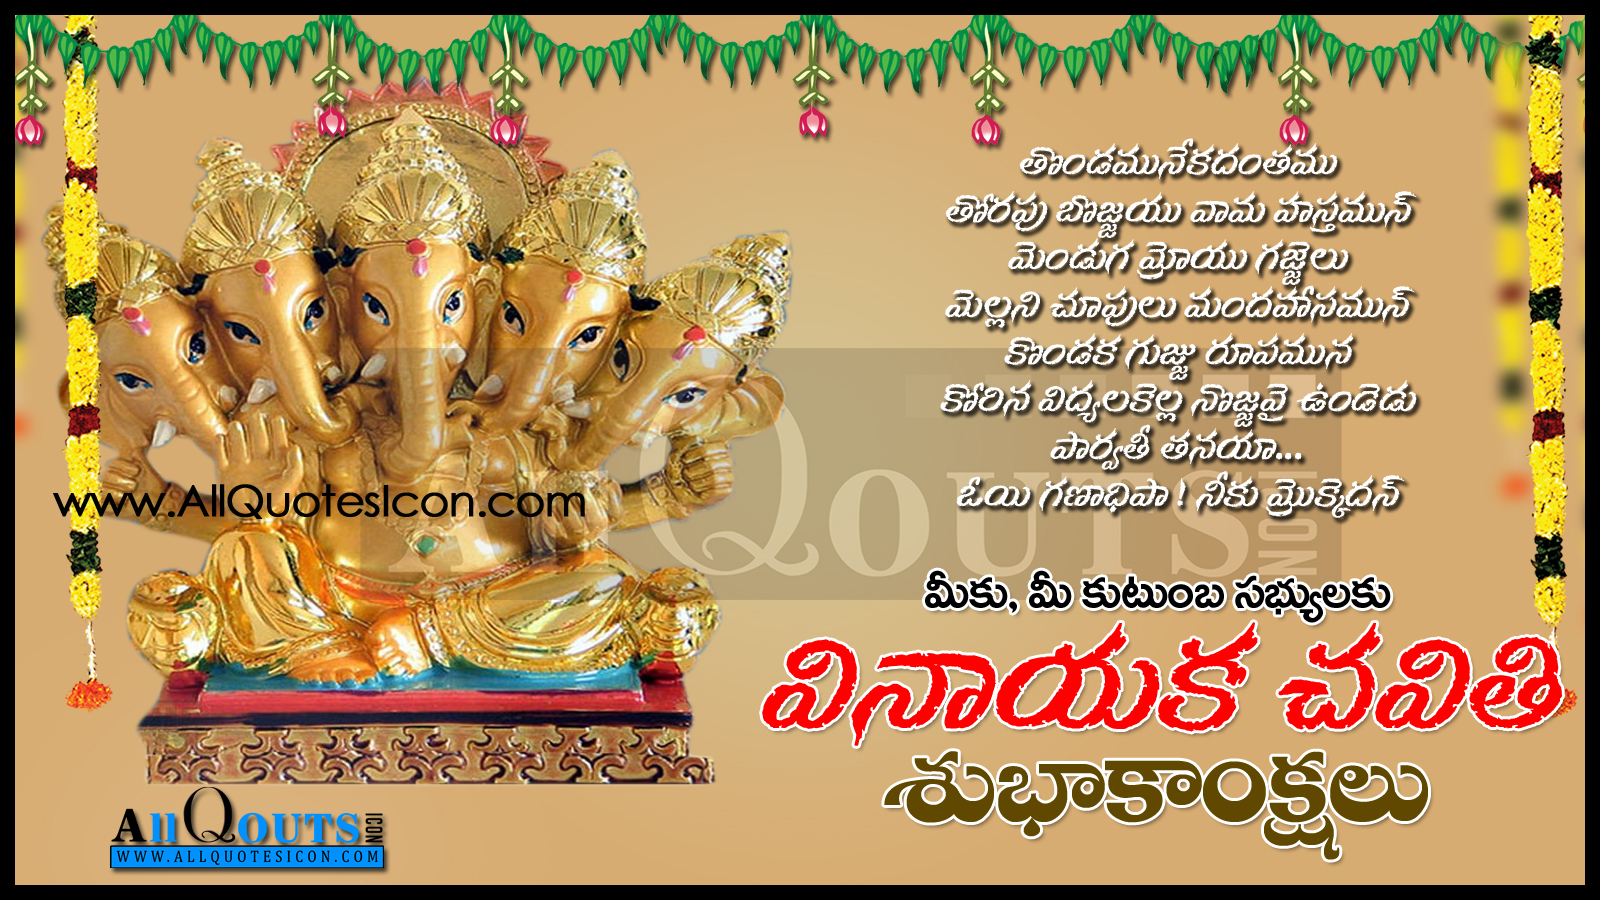 Best vinayaka chavithi quotes and wallpapers in telugu nice hd here is vinayaka chavithi 2015 wallpapers in telugubest vinayaka chavithi information in telugu m4hsunfo Gallery